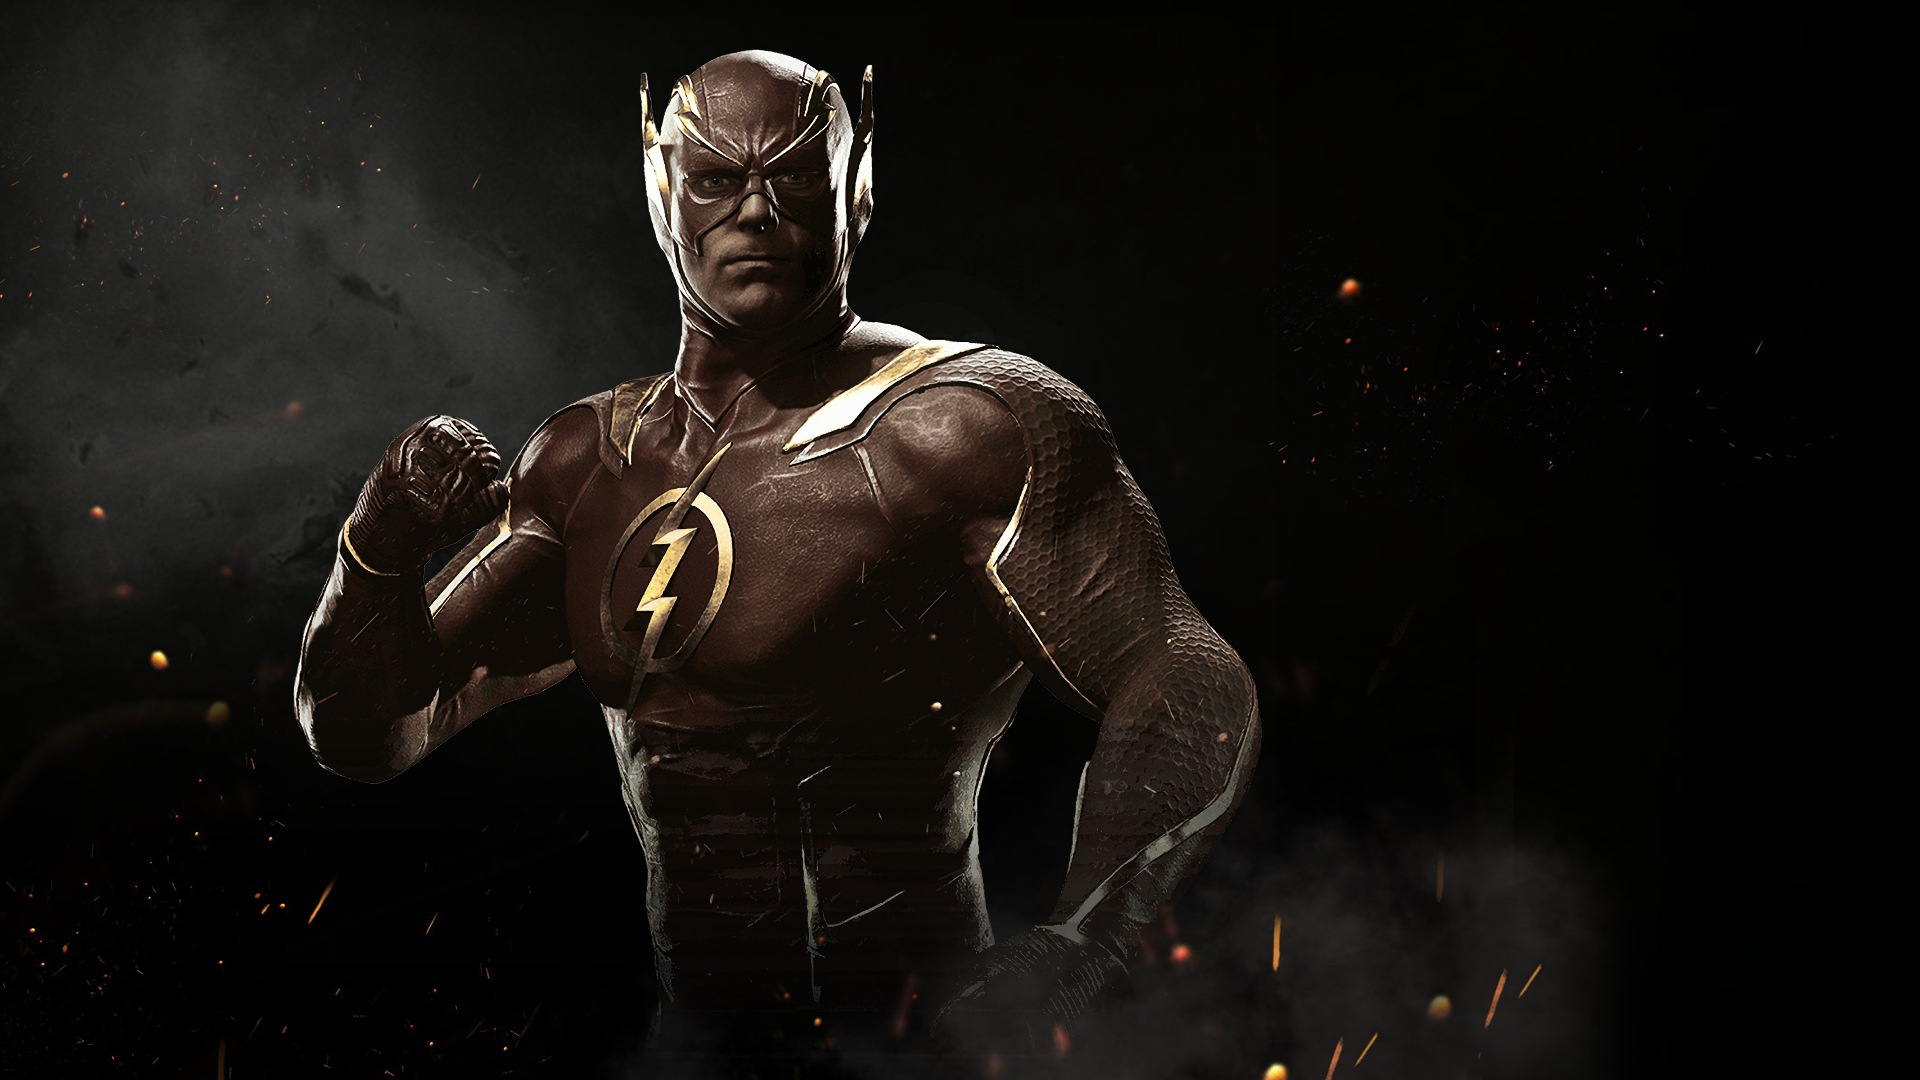 Injustice 2 Hd Wallpaper Background Image 1920x1080 Id